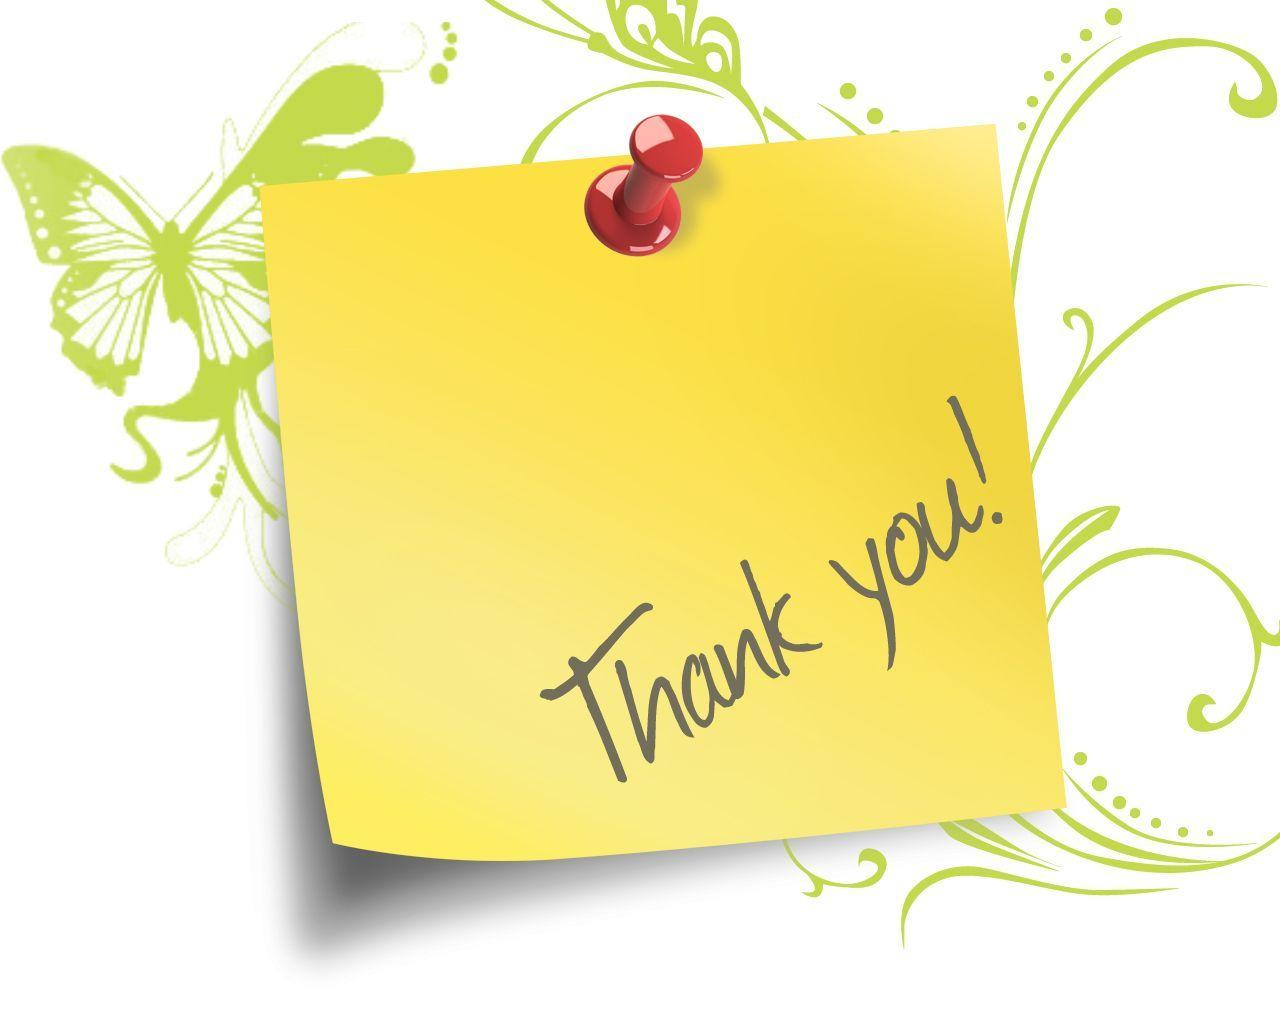 Wallpapers For > Thank You Wallpaper Hd For Ppt